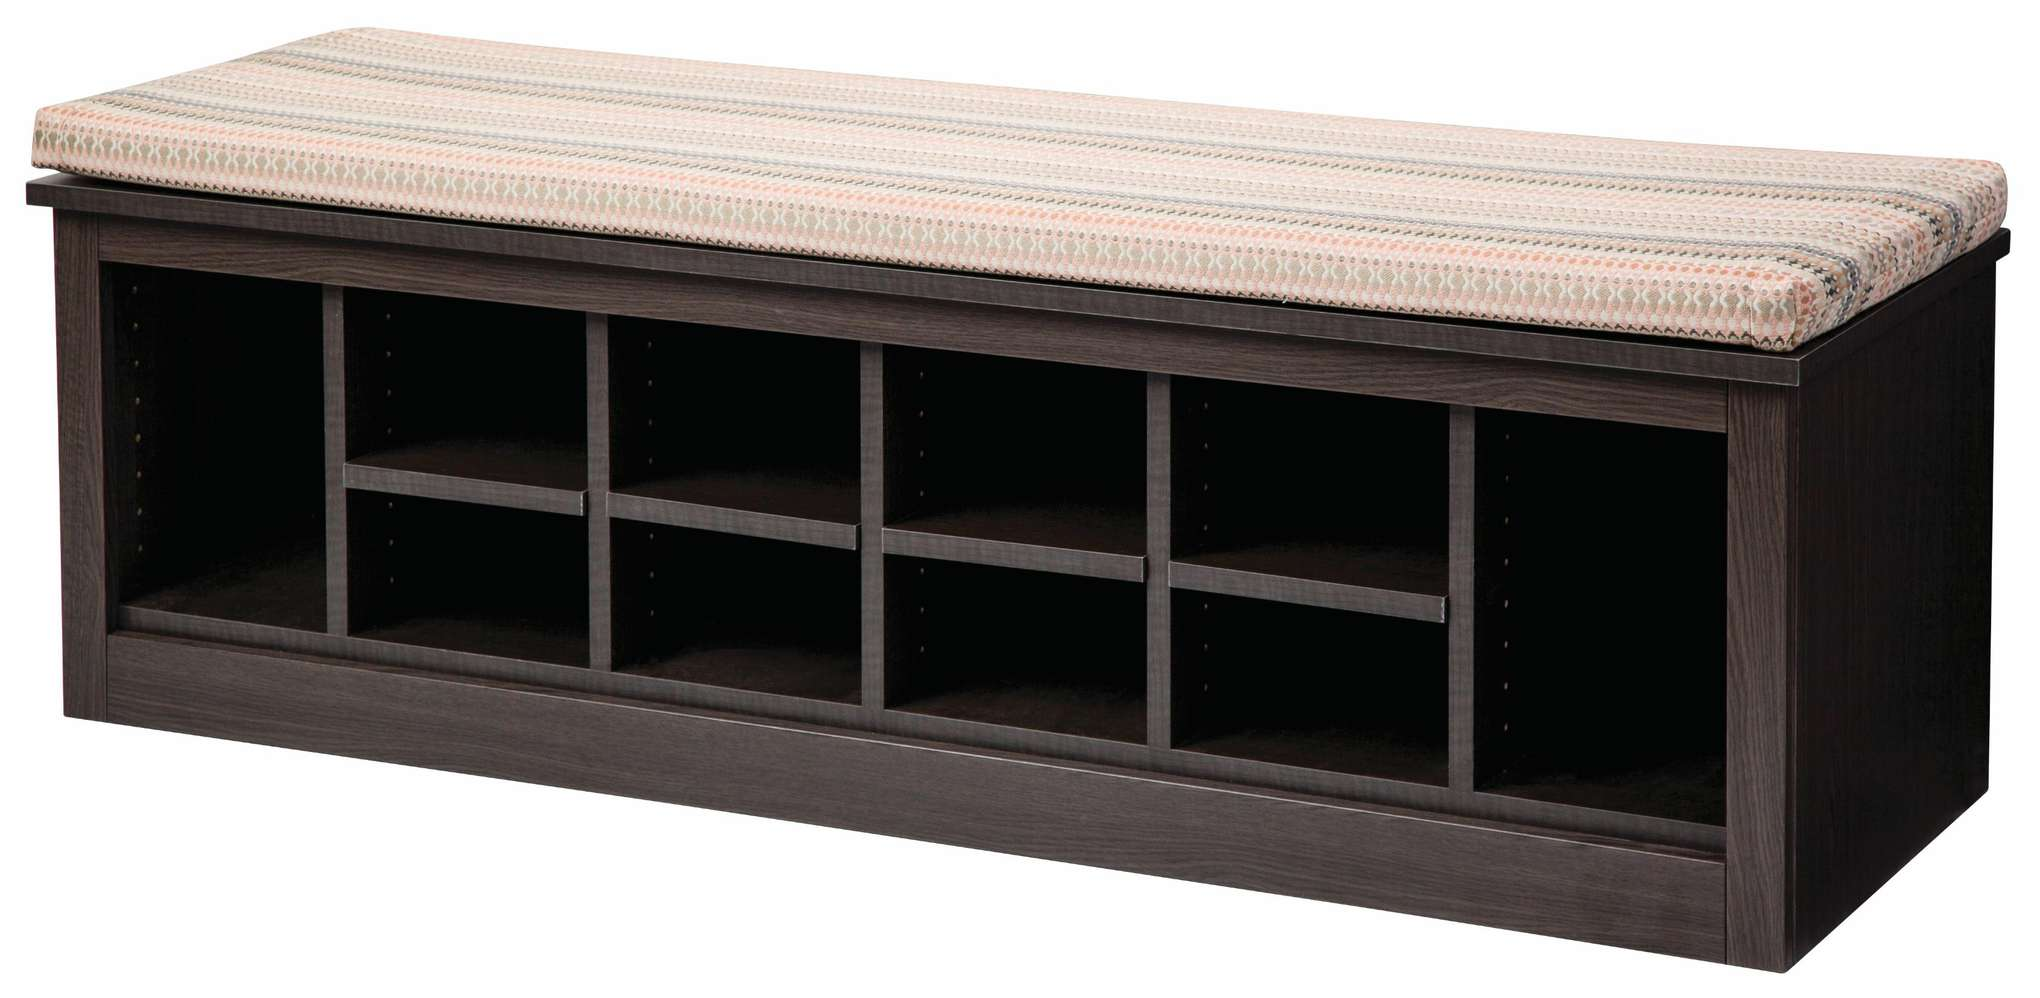 Malaga Storage Bench With Cubbies Maxwell Thomas